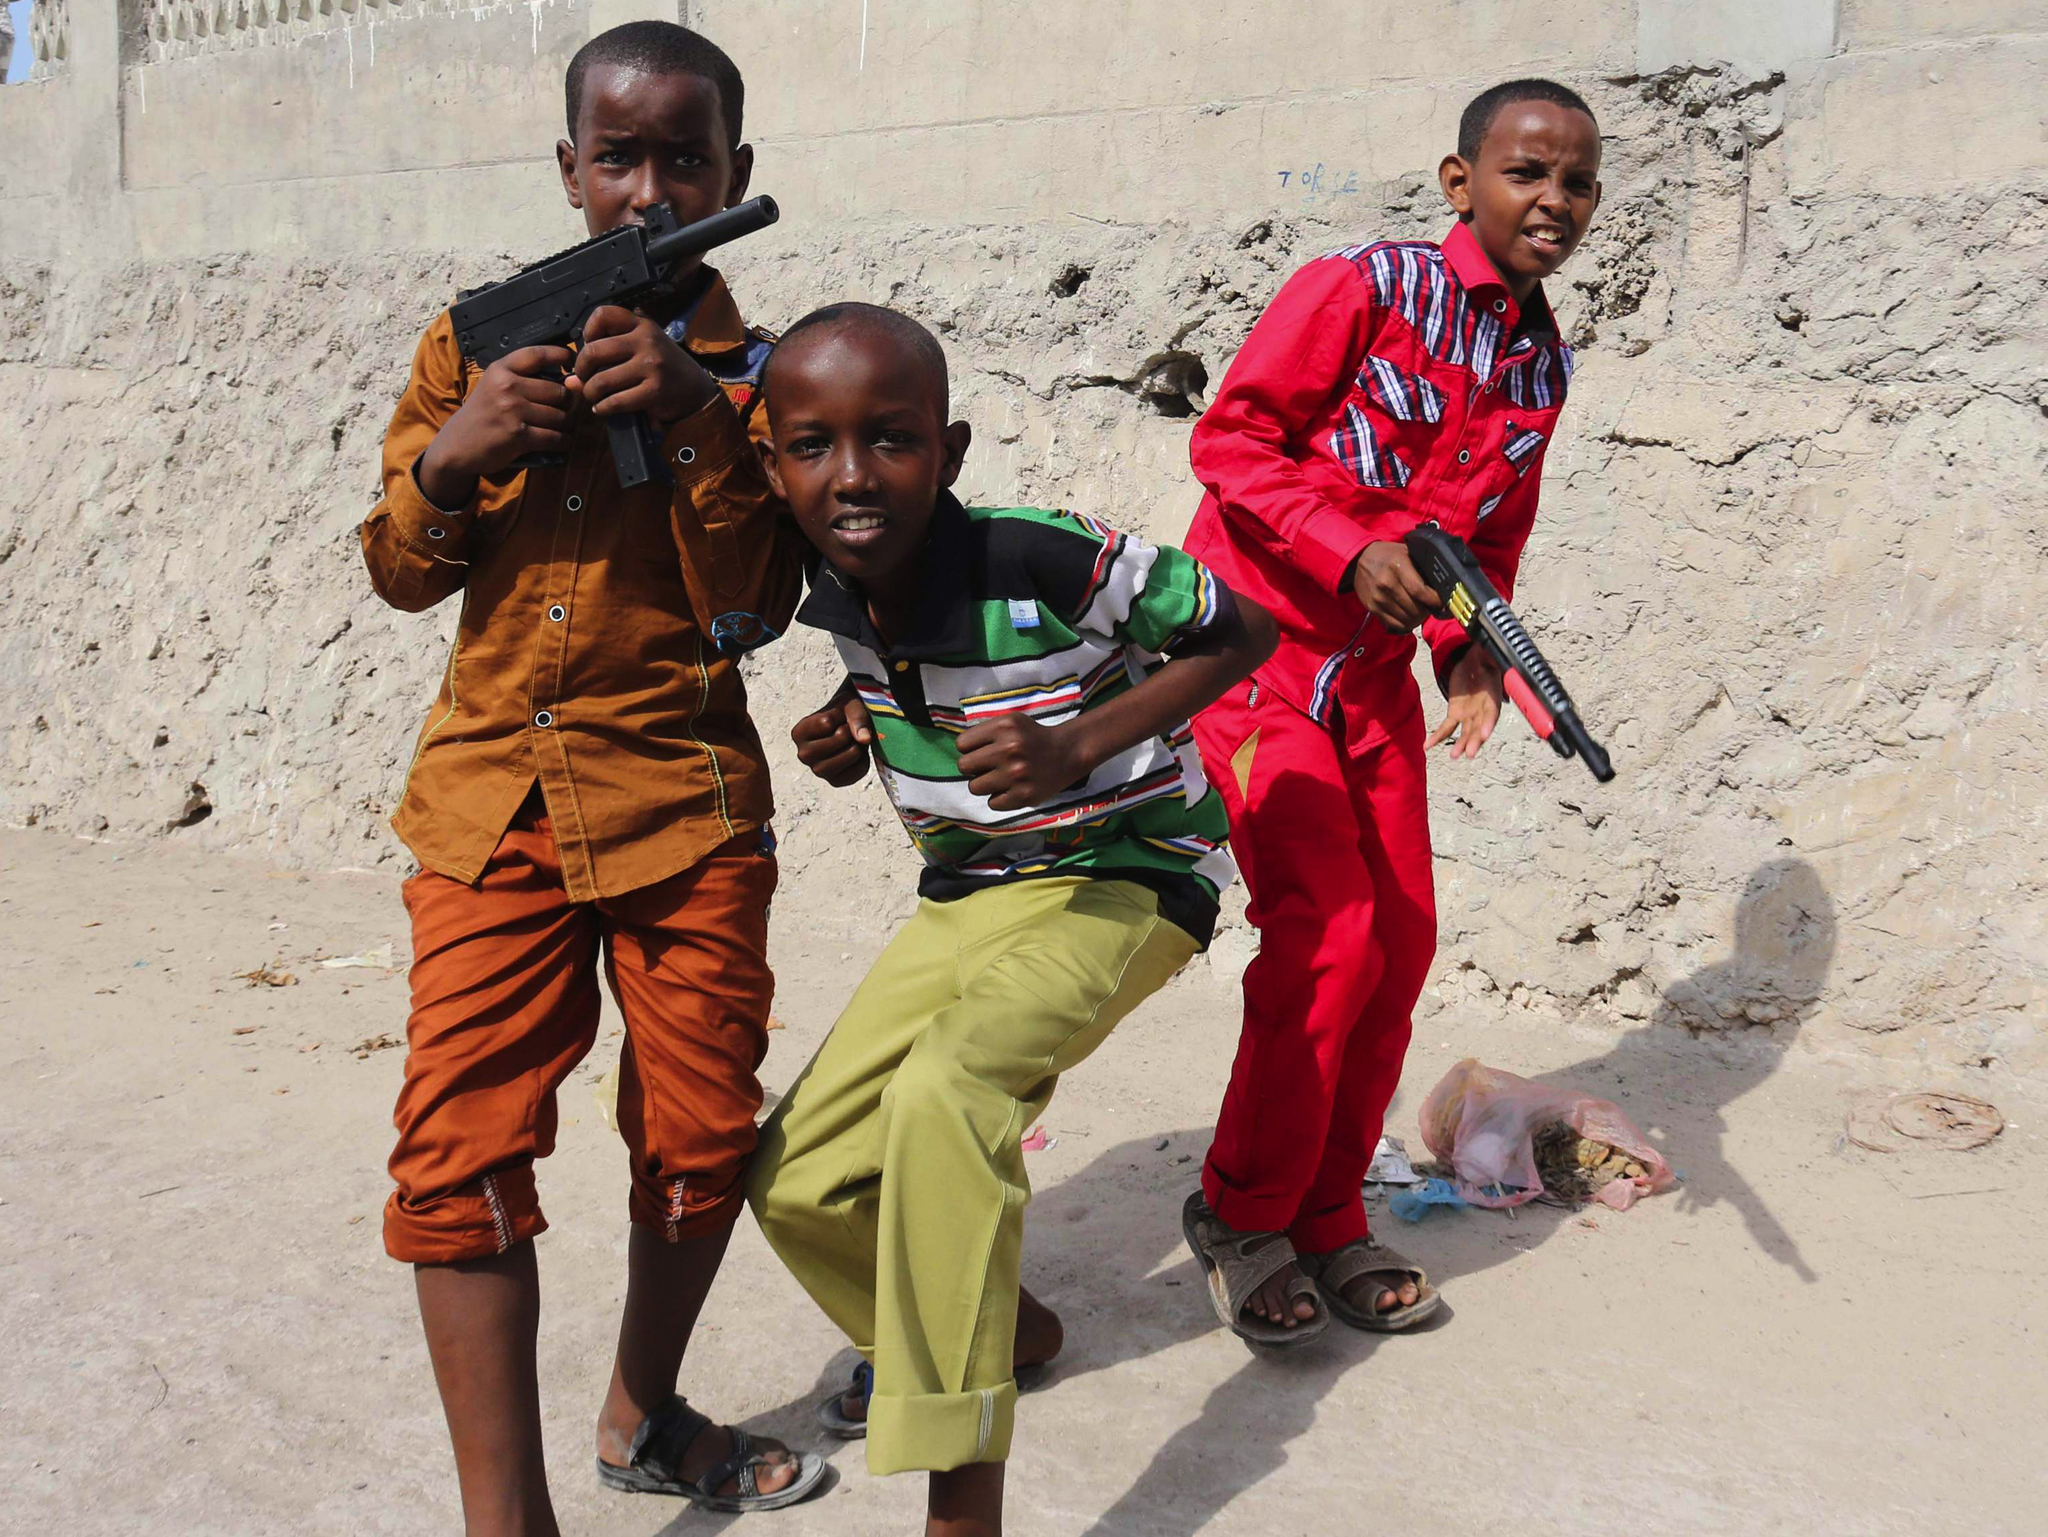 Boys play with their toy guns after attending Eid al-Fitr prayers to mark the end of the fasting month of Ramadan in Somalia's capital Mogadishu.